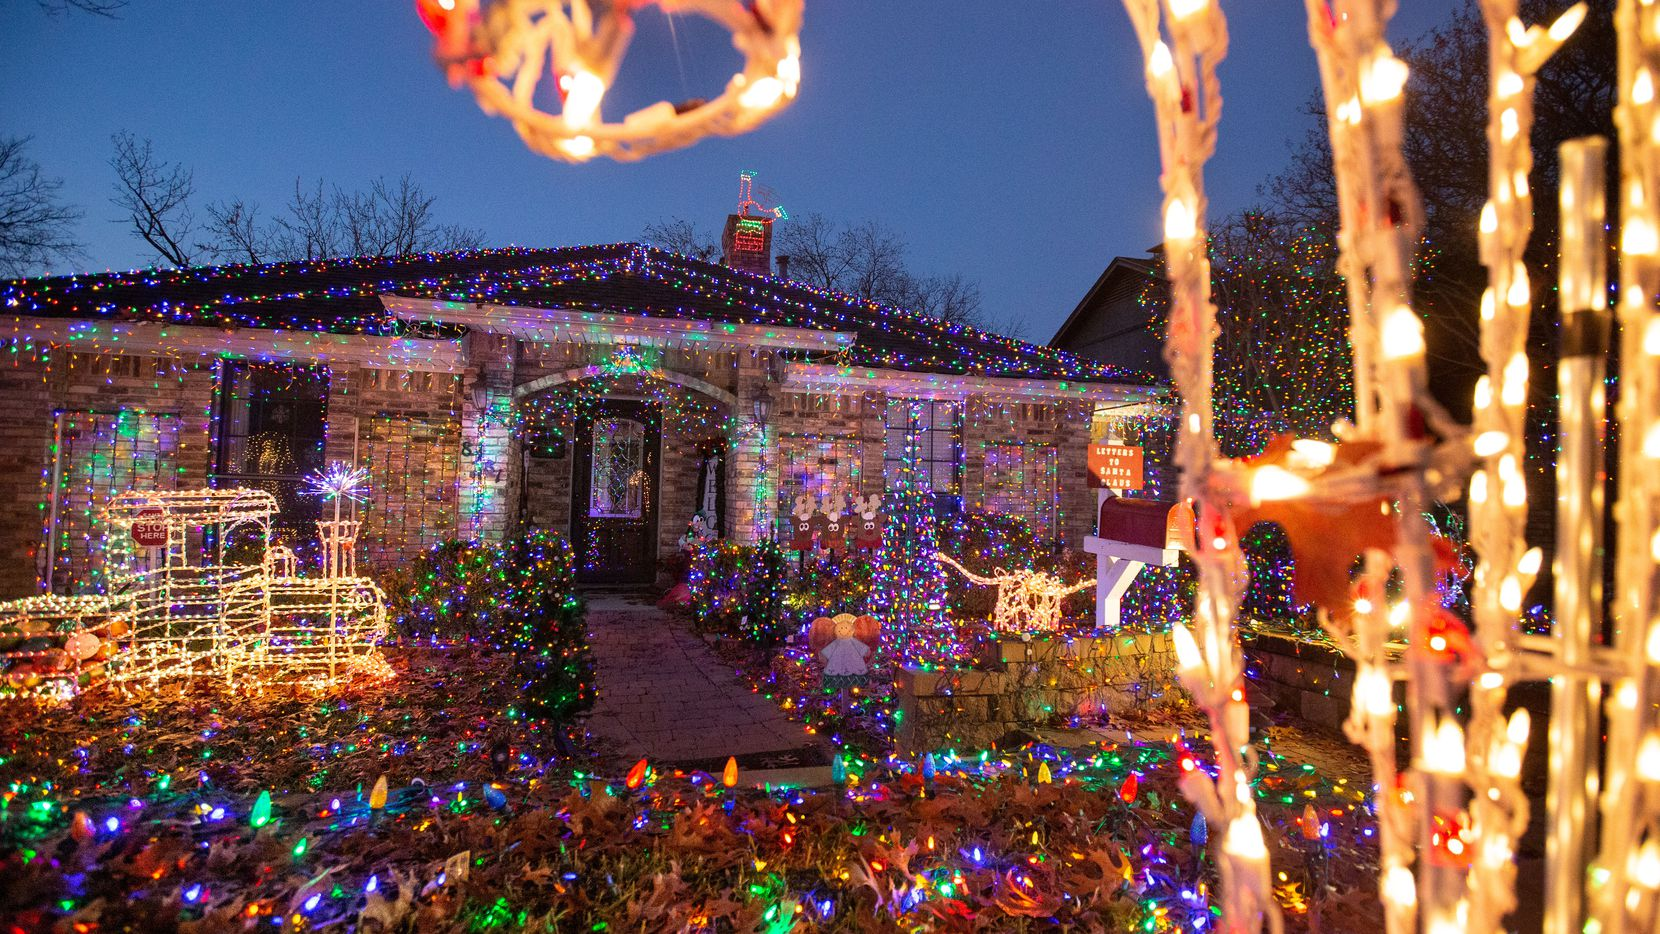 The Lake Highlands home belonging to Jim and Linda Shultz features 37,000 colored lights in Dallas. Jim said the front yard Christmas lights display takes 55 hours to install, and the pair started setting lights up in October. Perhaps the Shultzes or their neighbors will post a photo of their home on The Dallas Morning News members Facebook group this week.